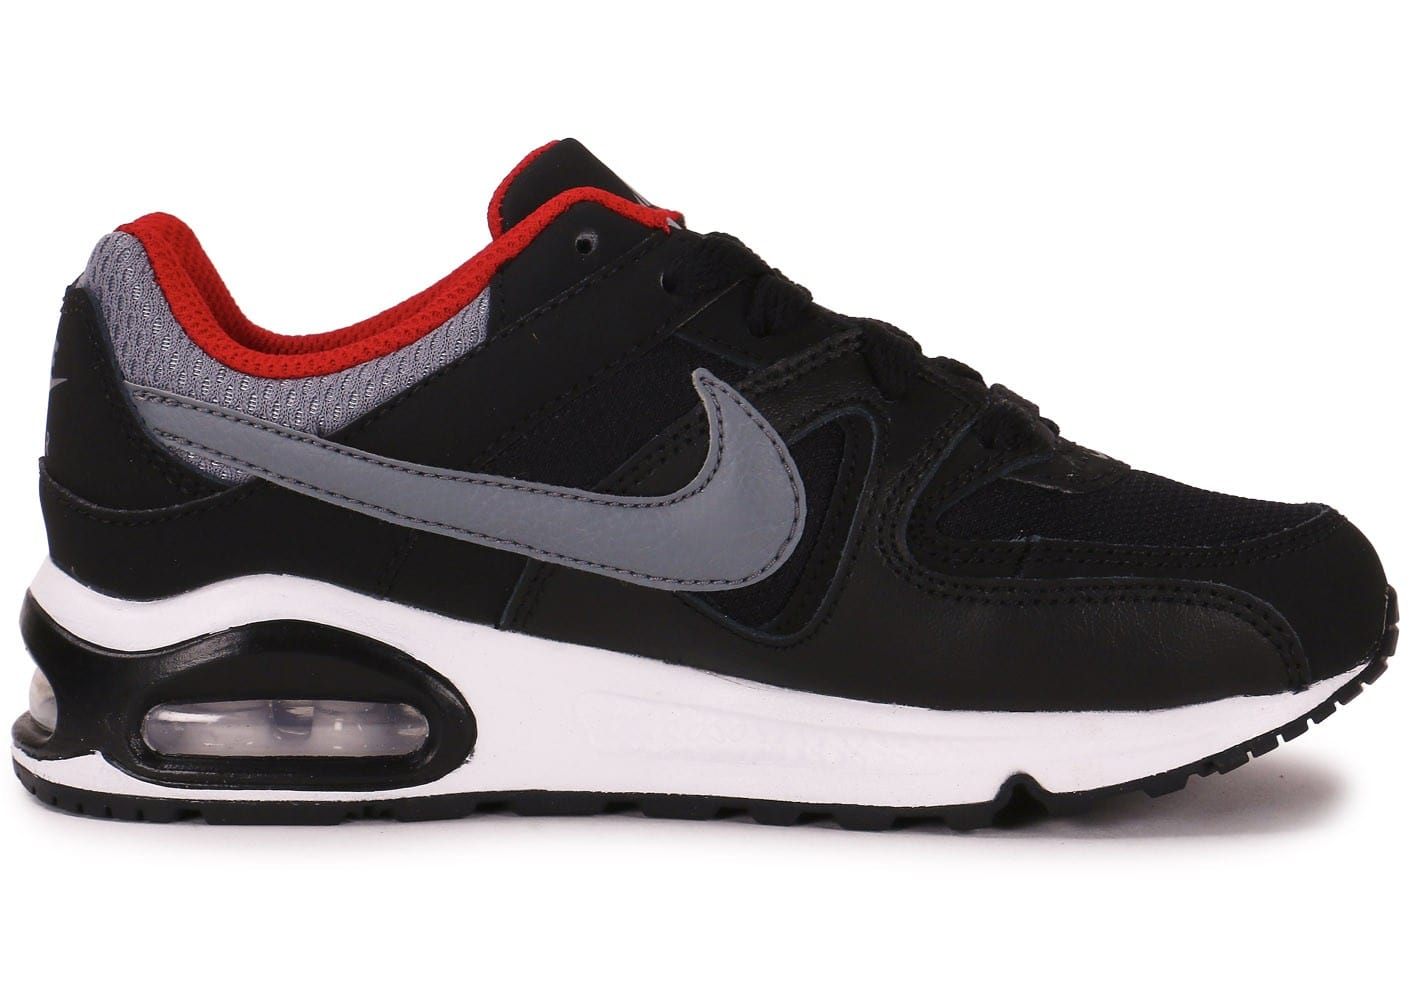 nike air max command enfant noire grise et rouge chaussures chaussures chausport. Black Bedroom Furniture Sets. Home Design Ideas